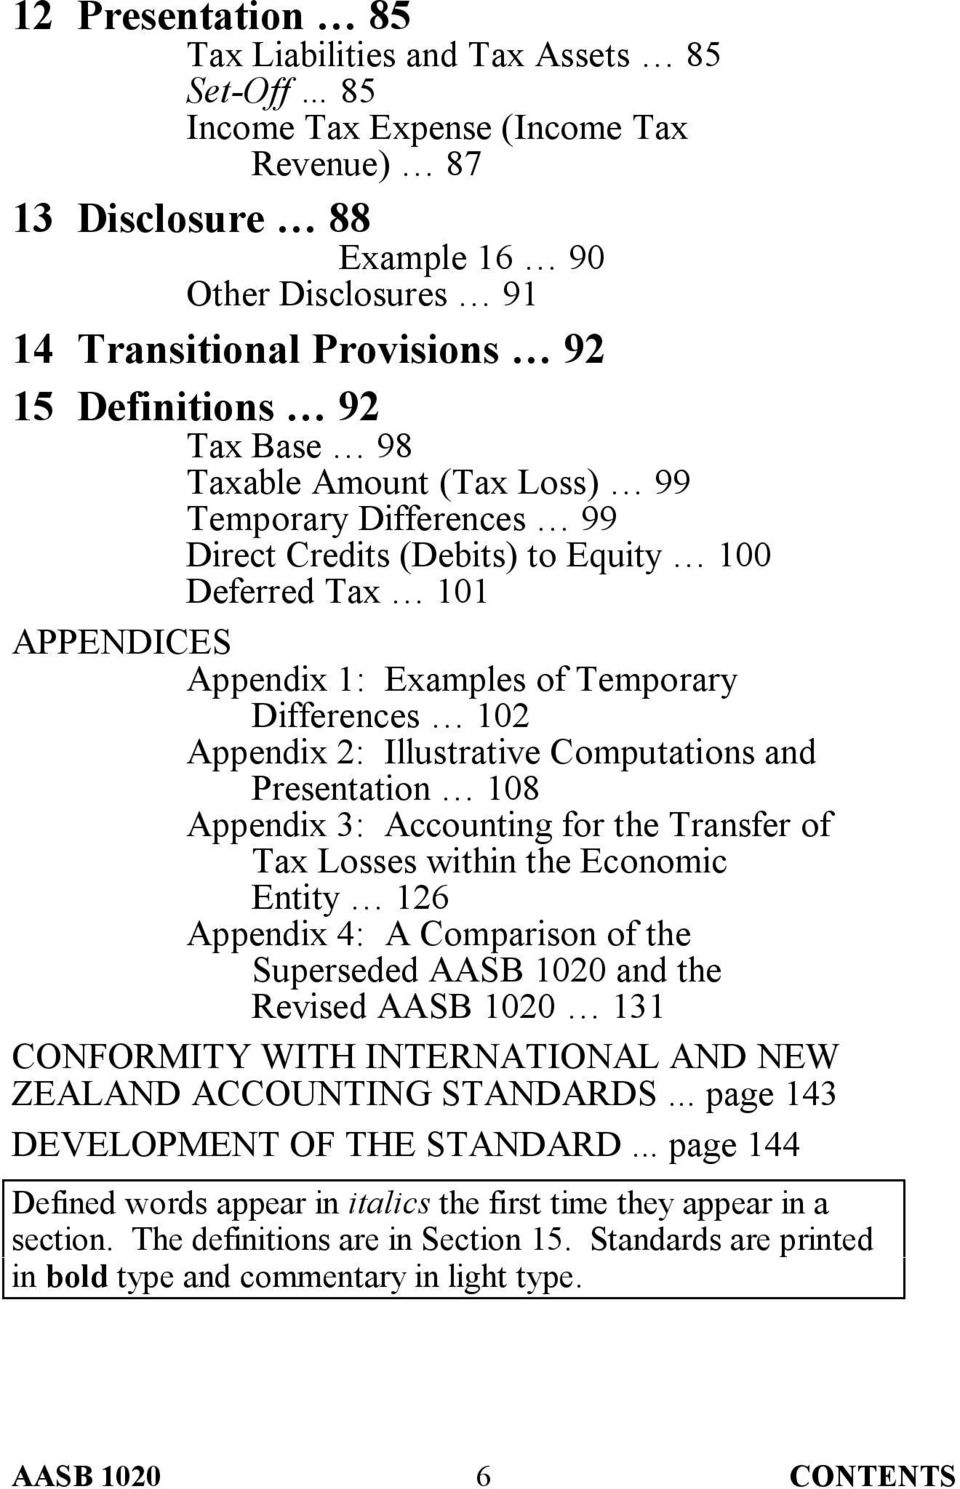 Appendix 2: Illustrative Computations and Presentation 108 Appendix 3: Accounting for the Transfer of Tax Losses within the Economic Entity 126 Appendix 4: A Comparison of the Superseded AASB 1020